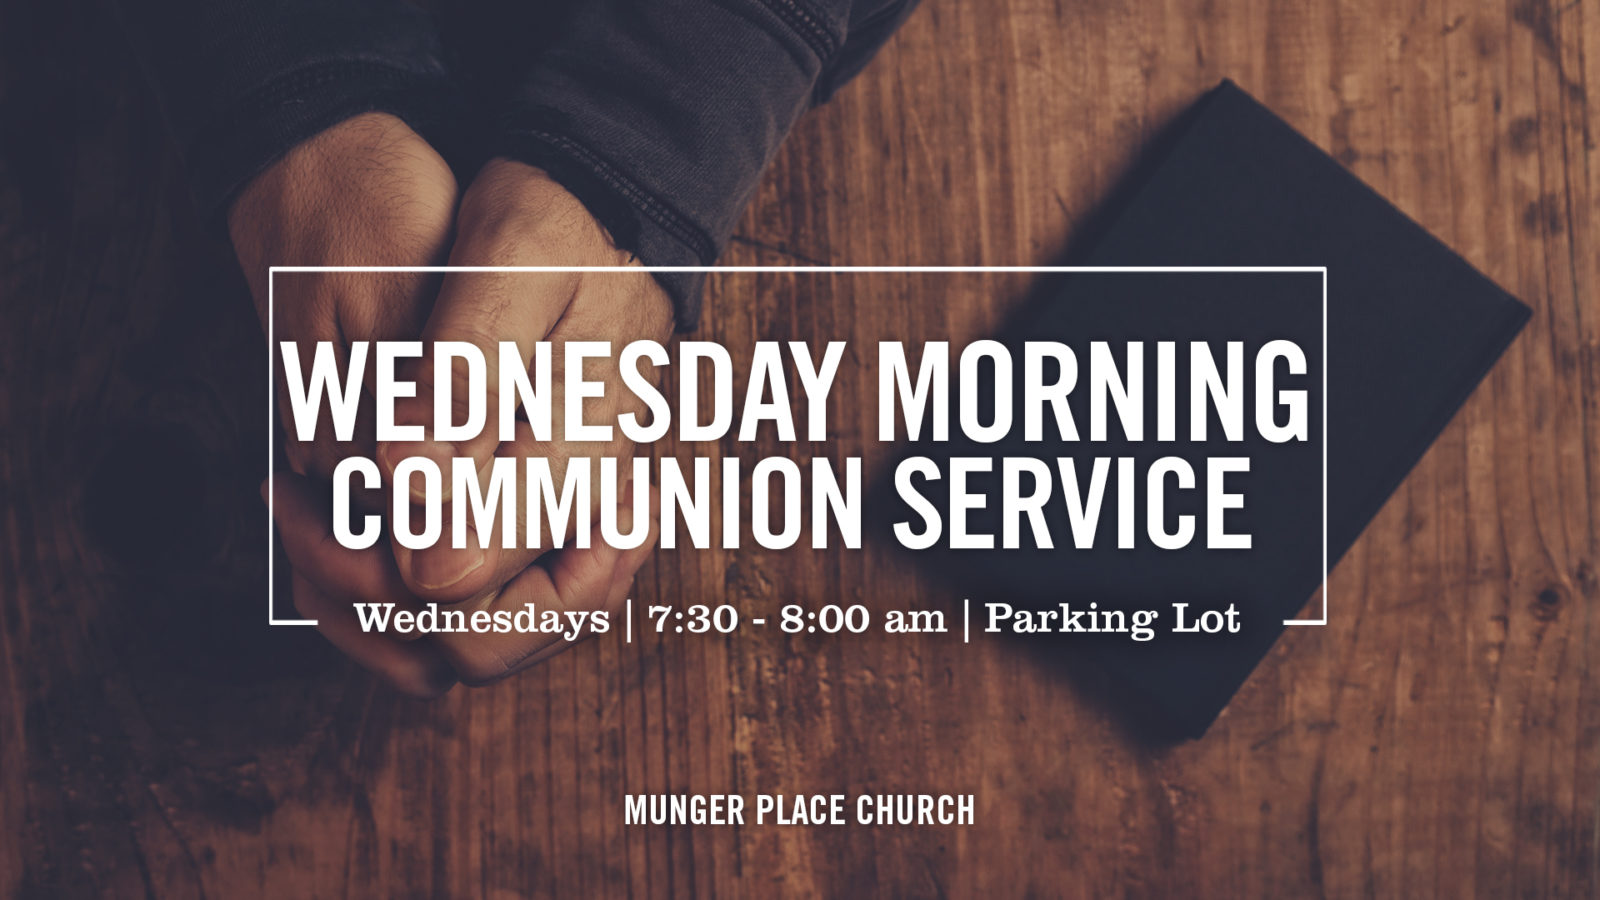 Wednesday Morning Communion Service